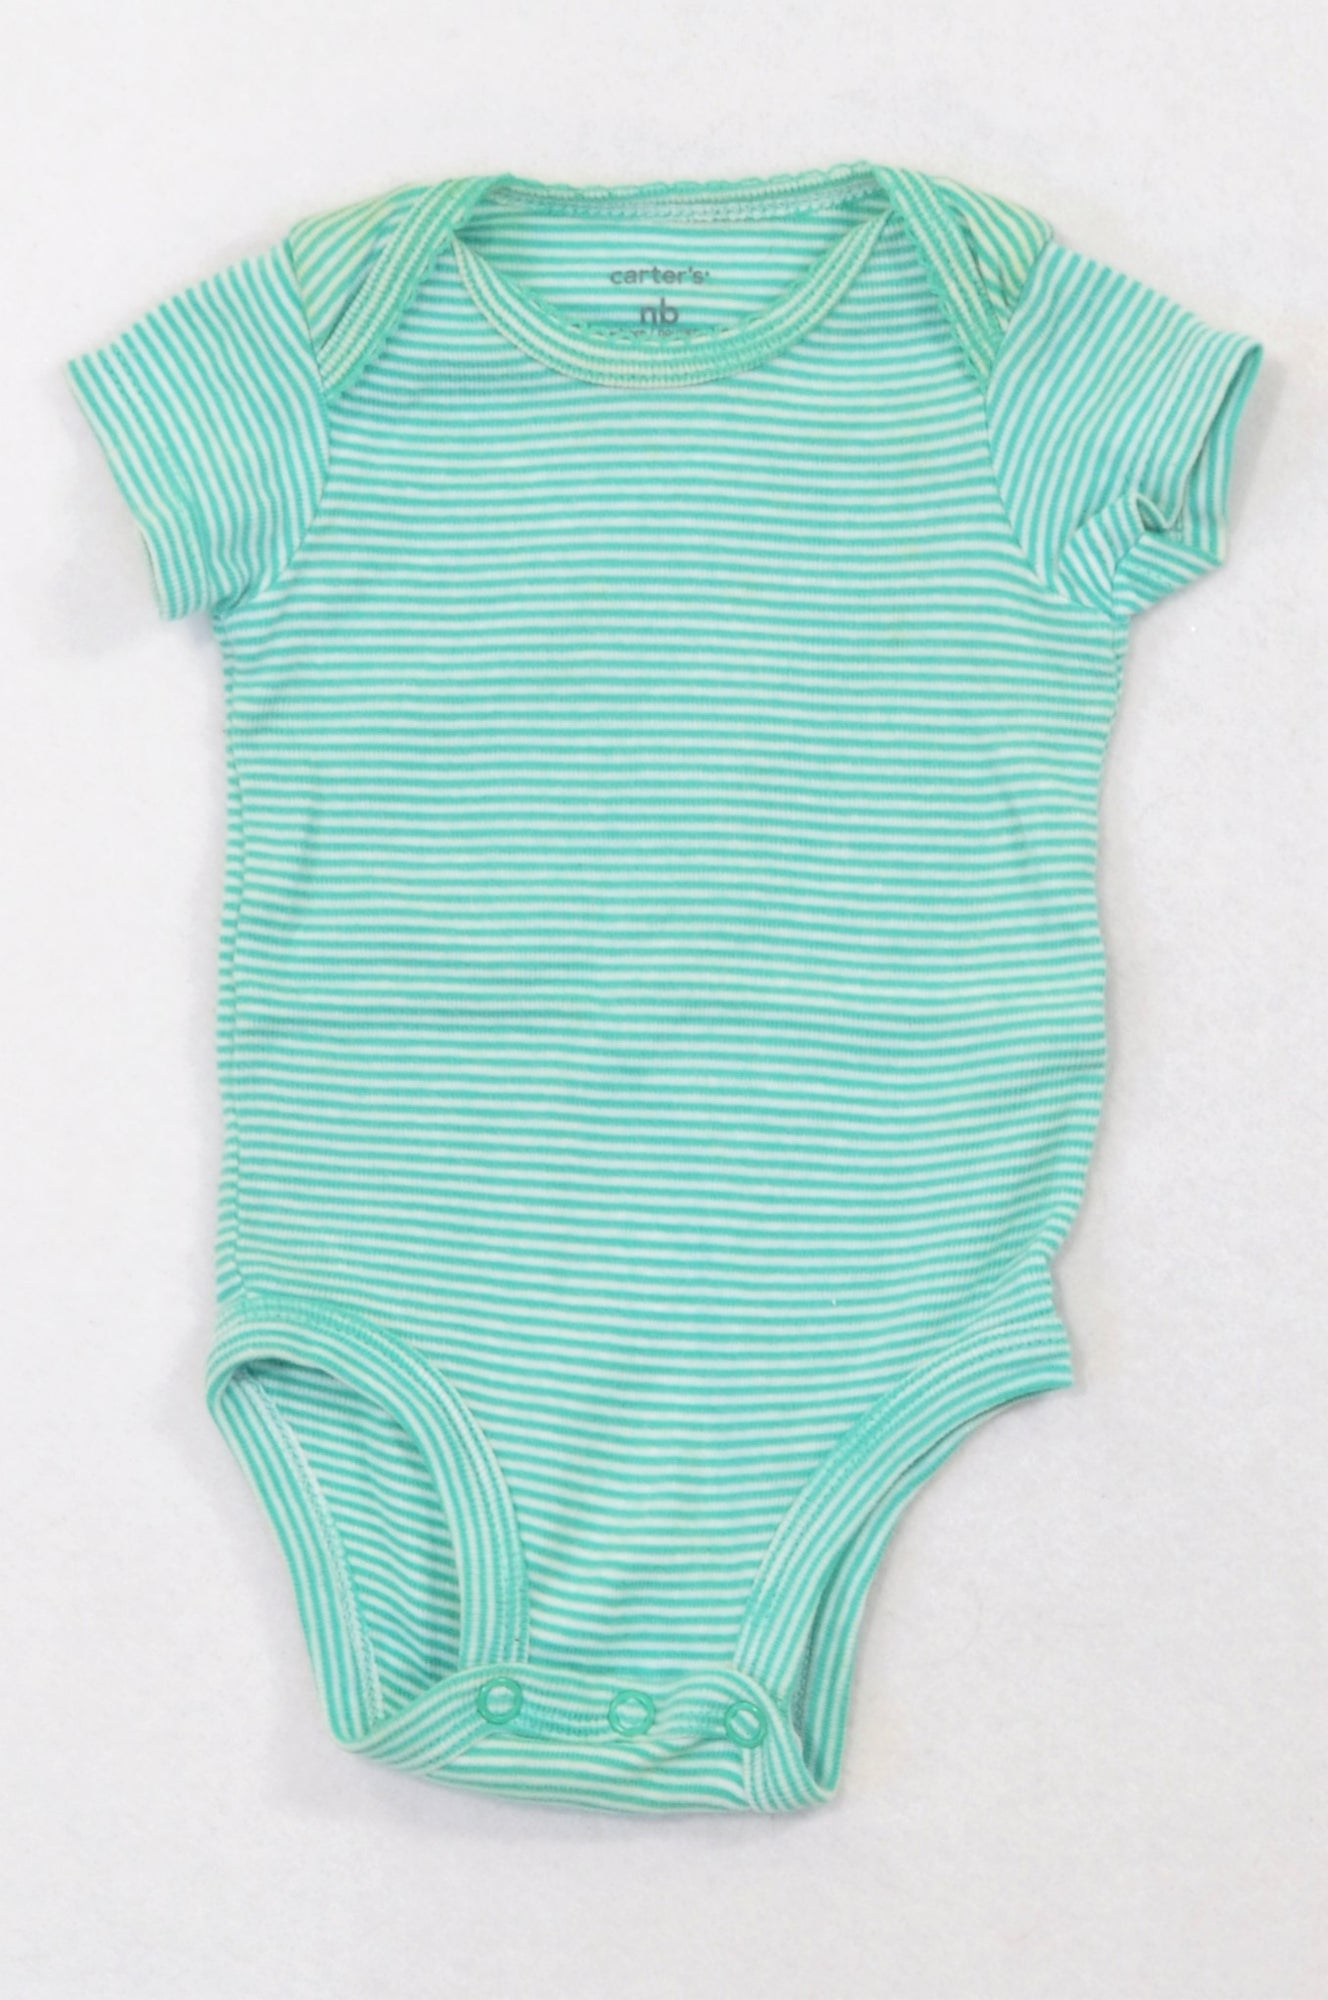 Carter's Green Thin Stripe Baby Grow Girls N-B